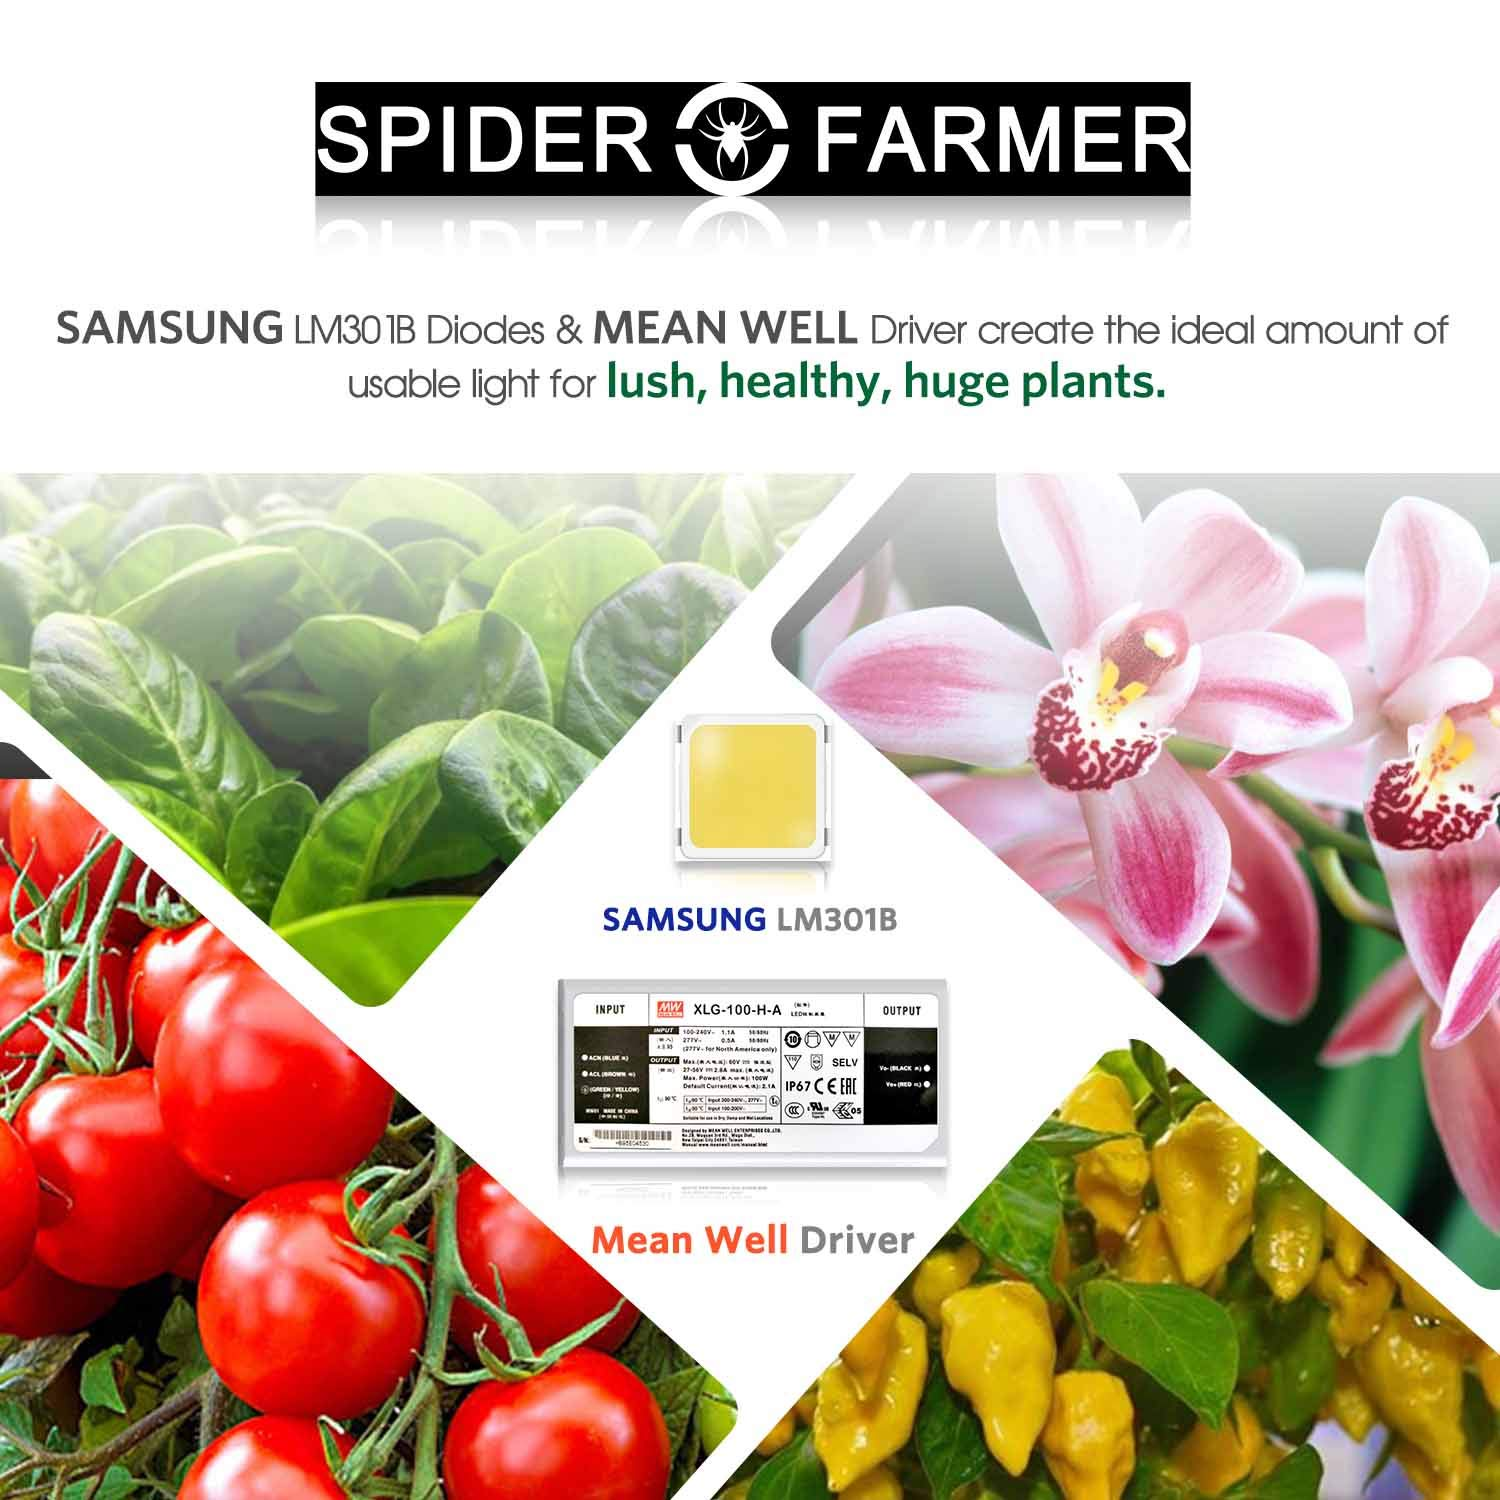 606pcs LEDs High Efficiency NO Noise Spider Farmer SF 2000 LED Grow Light with SAMSUNG Chips /& Dimmable Mean Well Driver Sunlike Full Spectrum 3000K 5000K 660nm IR for Indoor Plants Veg and Flower